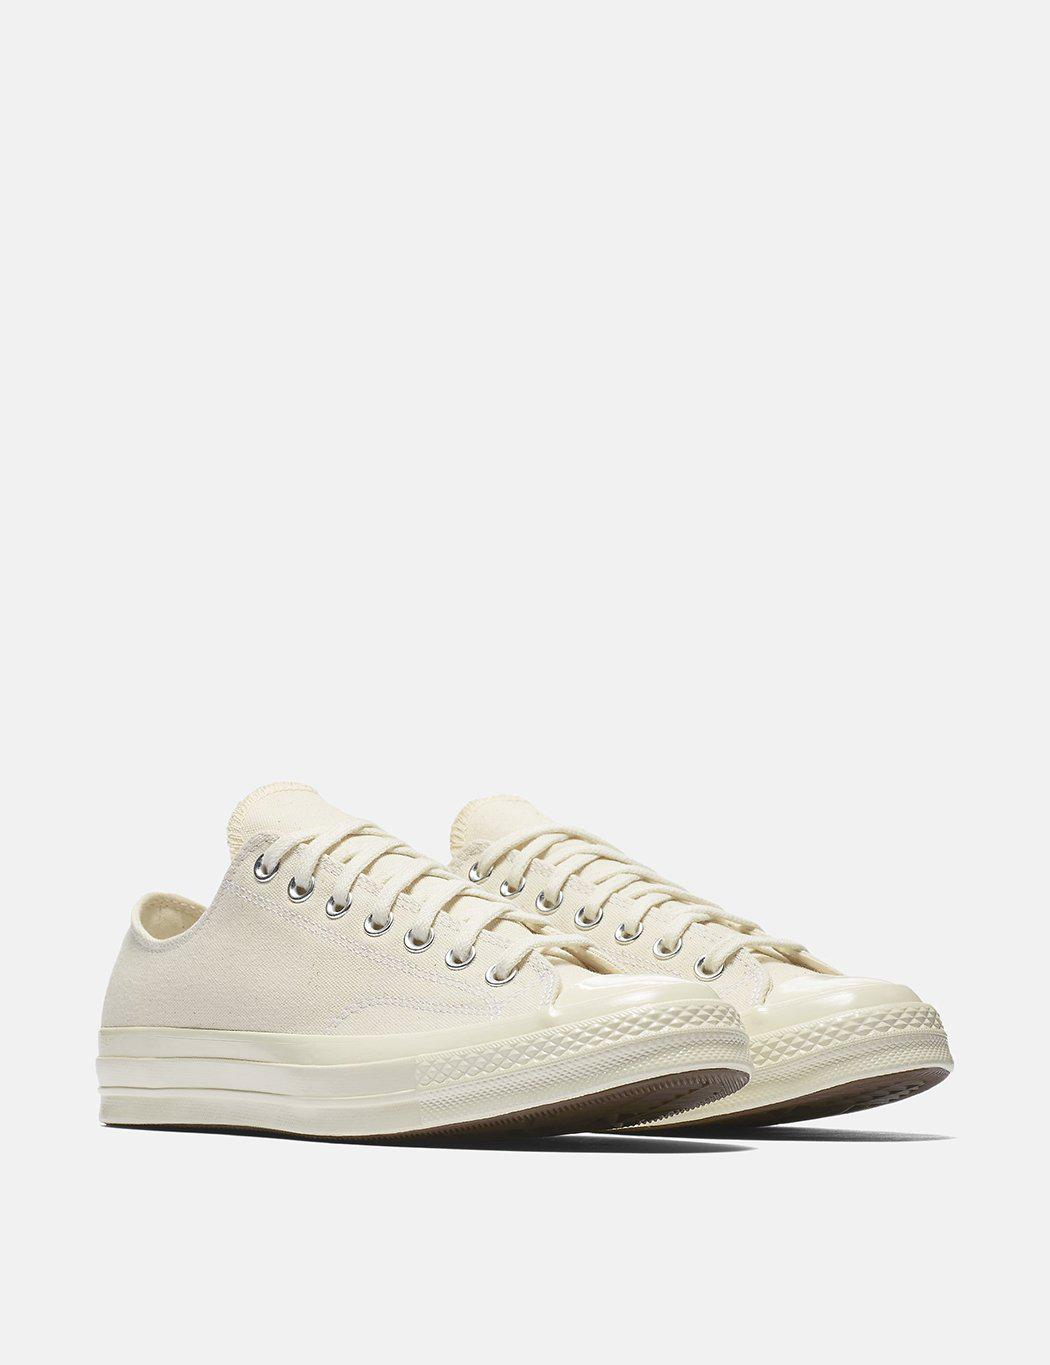 Lyst - Converse 70 s Chuck Taylor Low 151230c (canvas) in Natural for Men aaf0f1ead